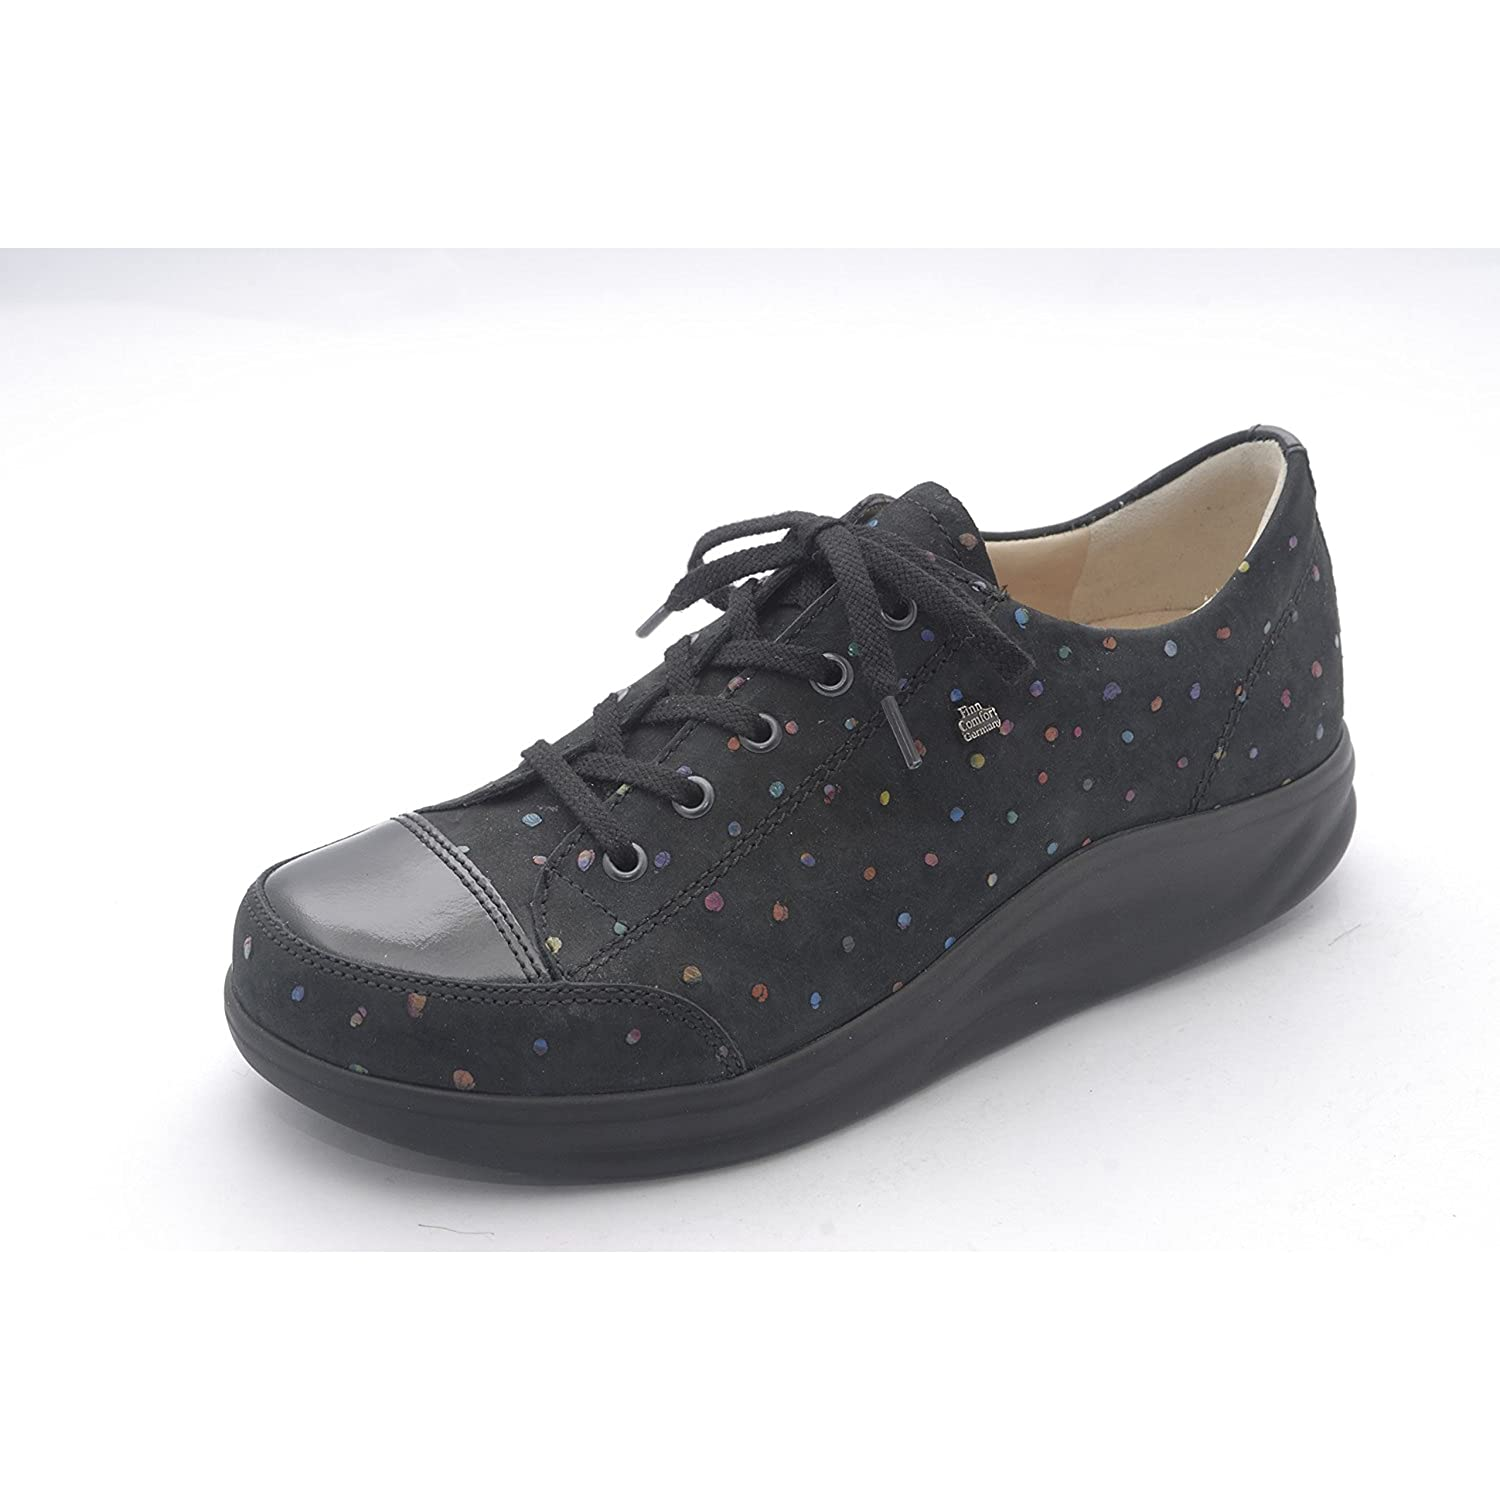 Finn Comfort Women's Ikebukuro Oxford B014MHJZP2 7 (4.5 UK Women's) Medium|Black Multi Dots